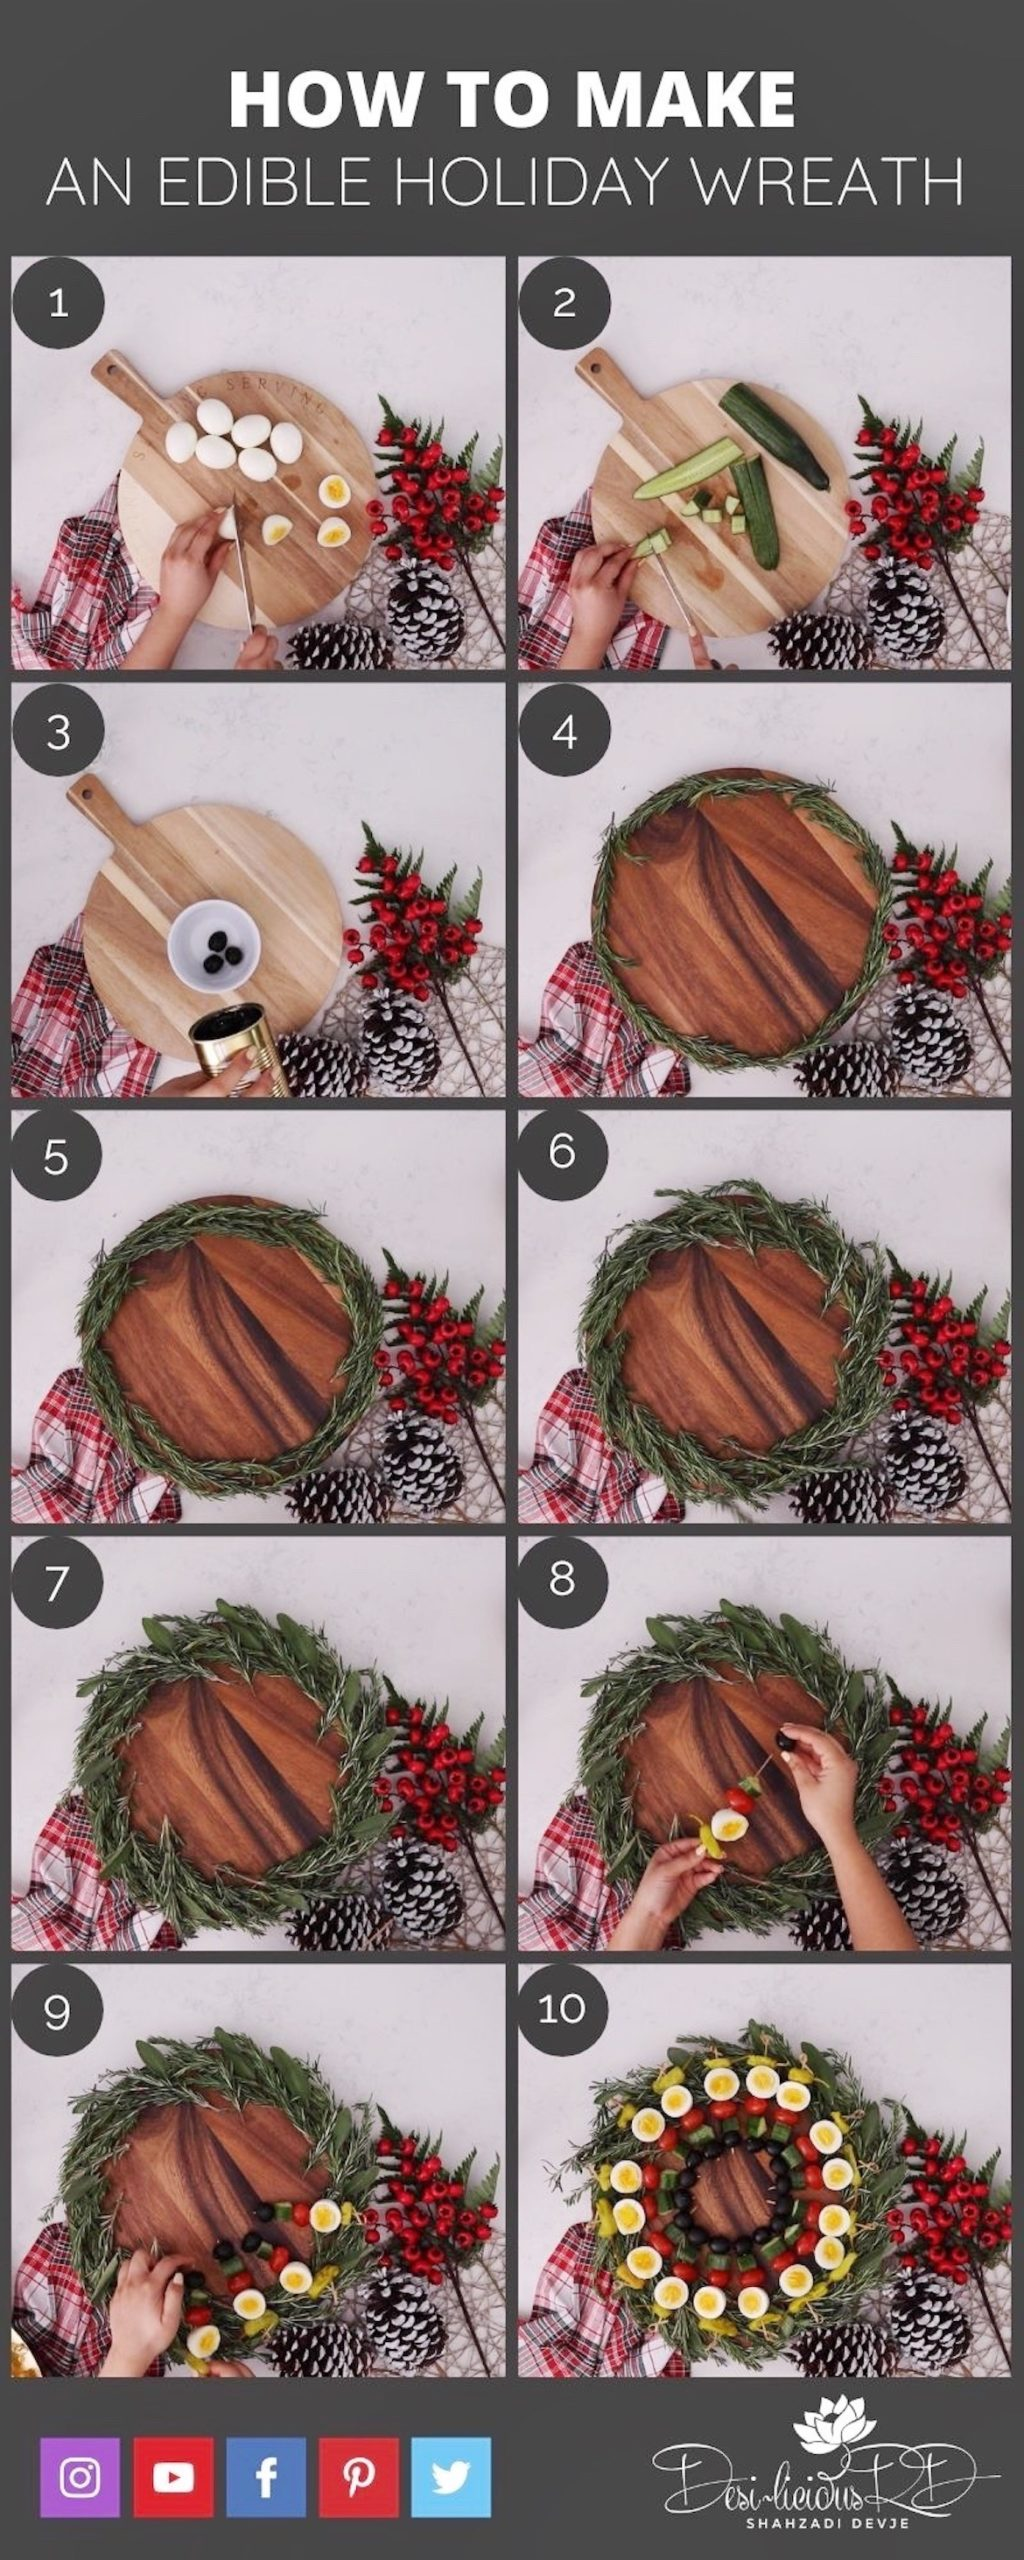 step by step preparation shots of how to make an edible holiday wreath - a low carb appetizer using boiled eggs for your holiday table.